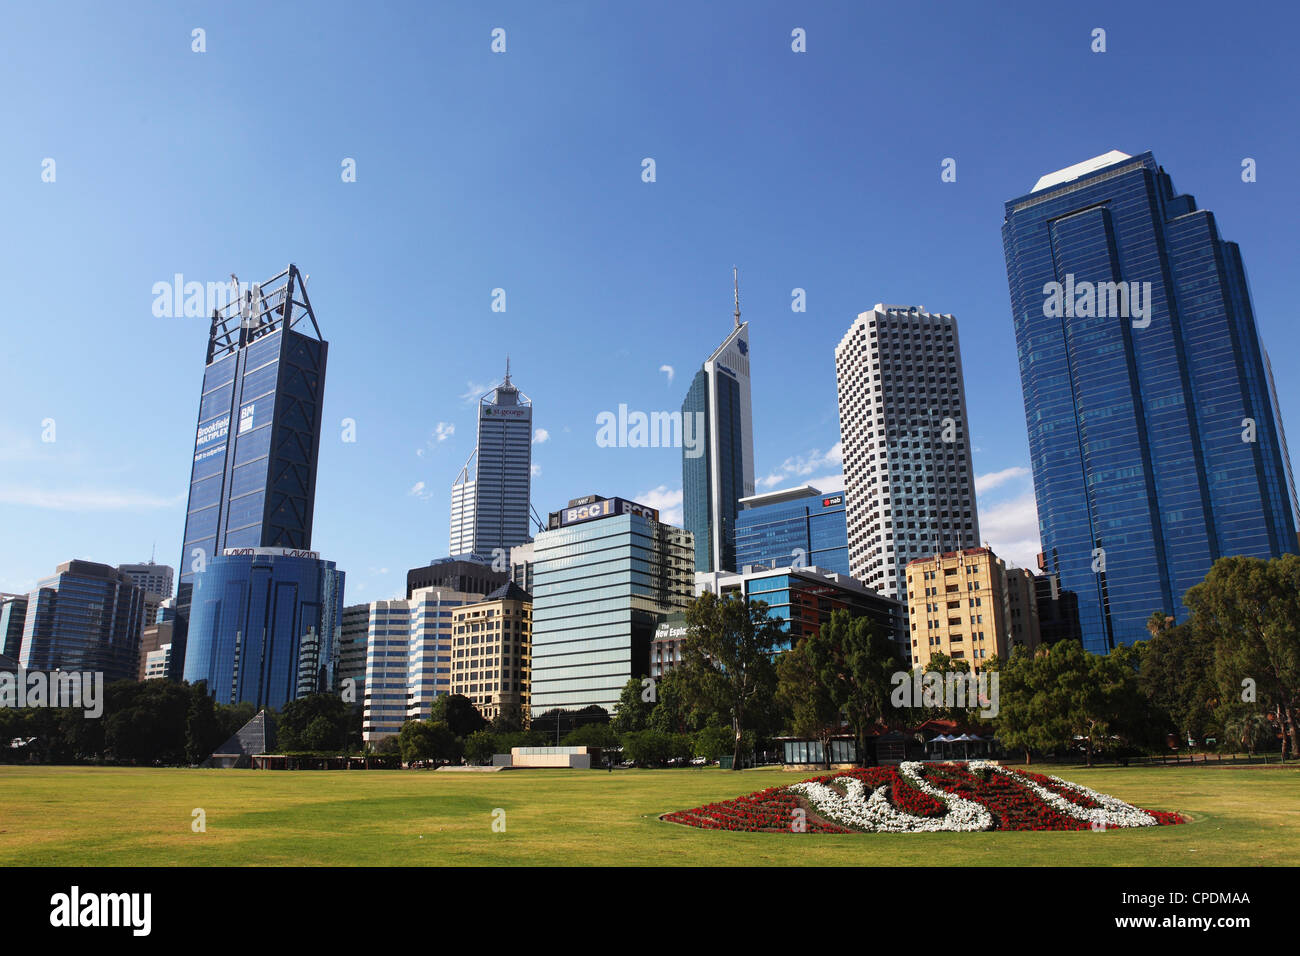 Skyscrapers of the Central Business District (CBD) tower over the Esplanade at Perth, Western Australia, Australia, - Stock Image